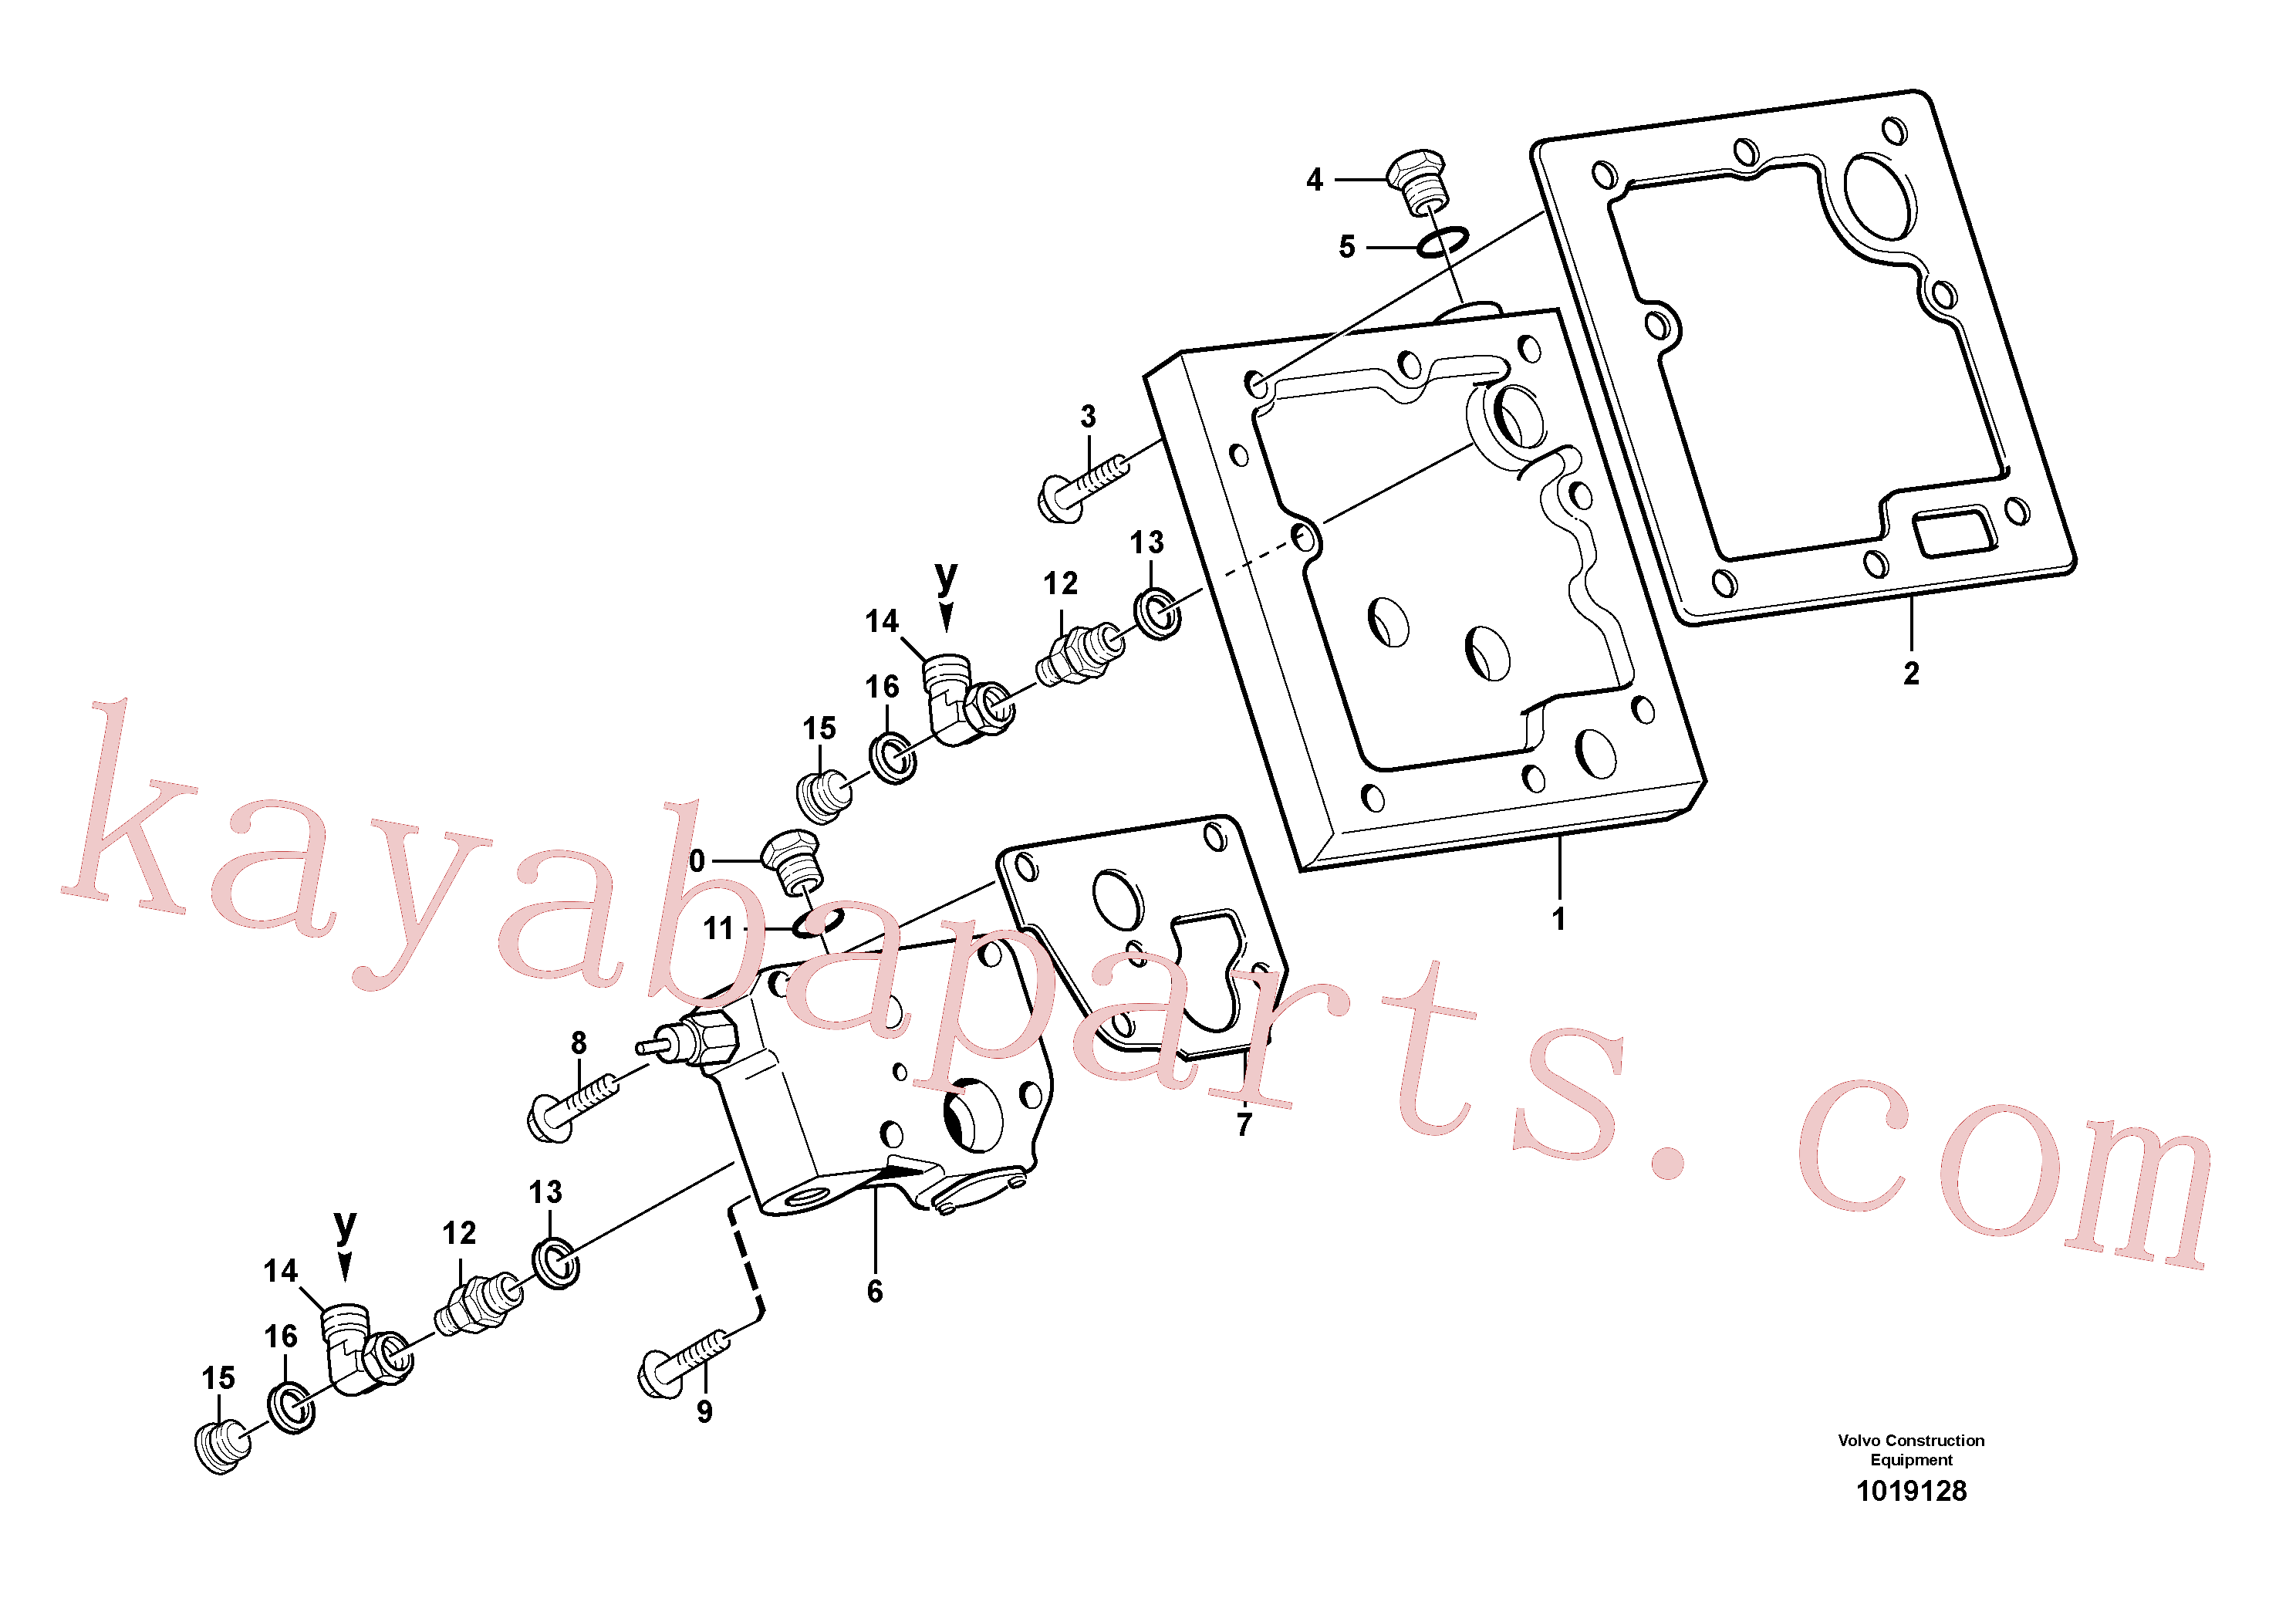 VOE13965181 for Volvo Lubricating oil valve with fitting parts(1019128 assembly)